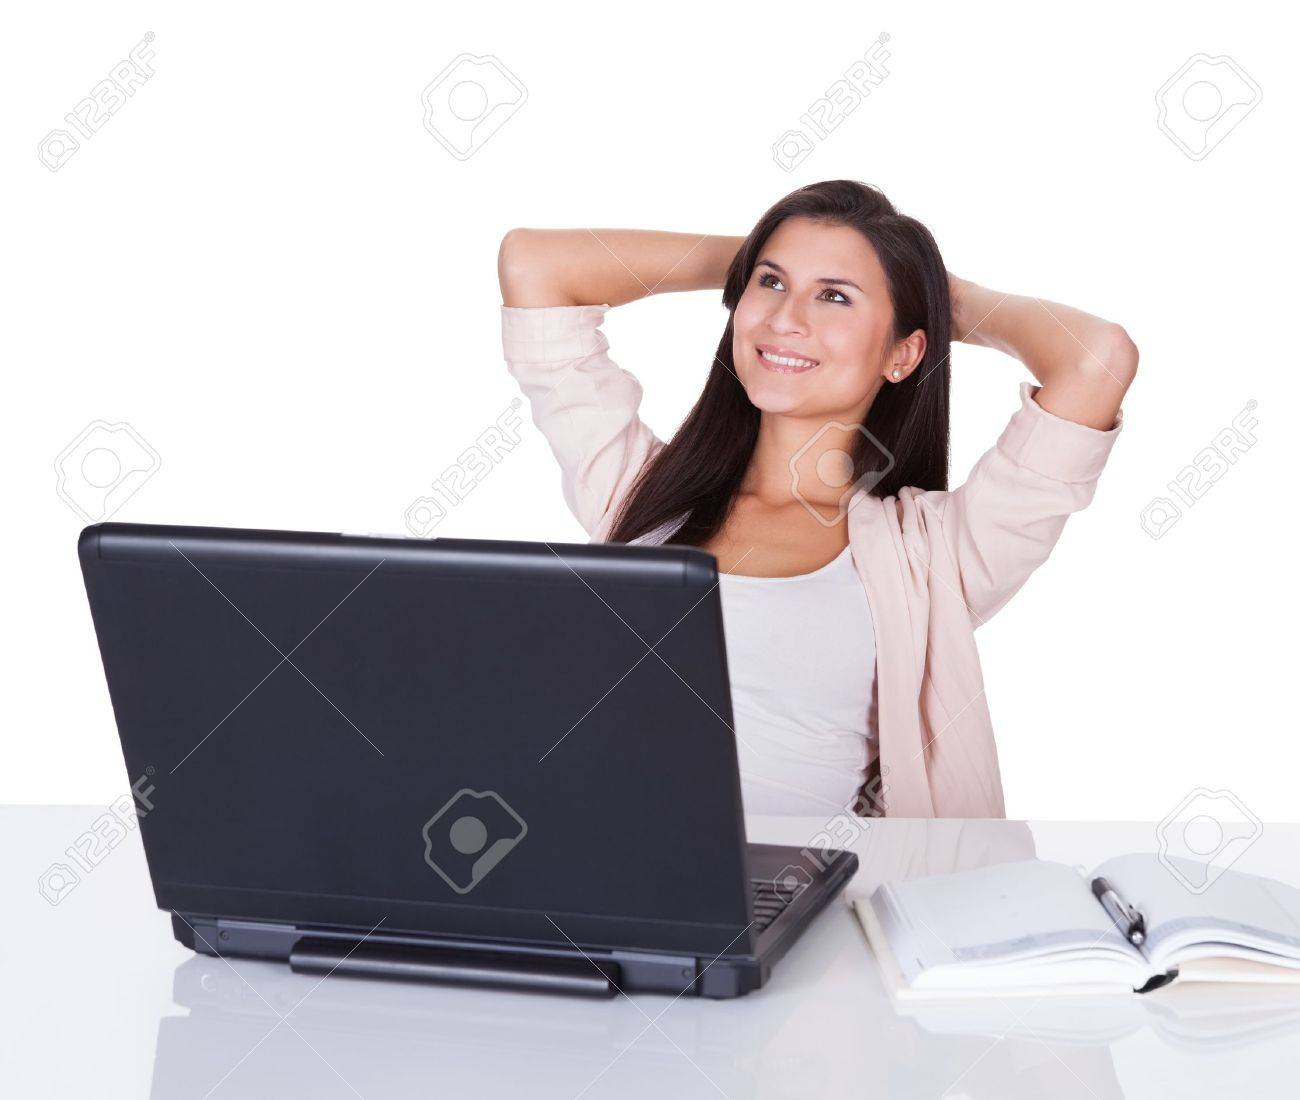 Attractive confident young professional woman sitting working at her laptop with an open book alongside her Stock Photo - 16522604